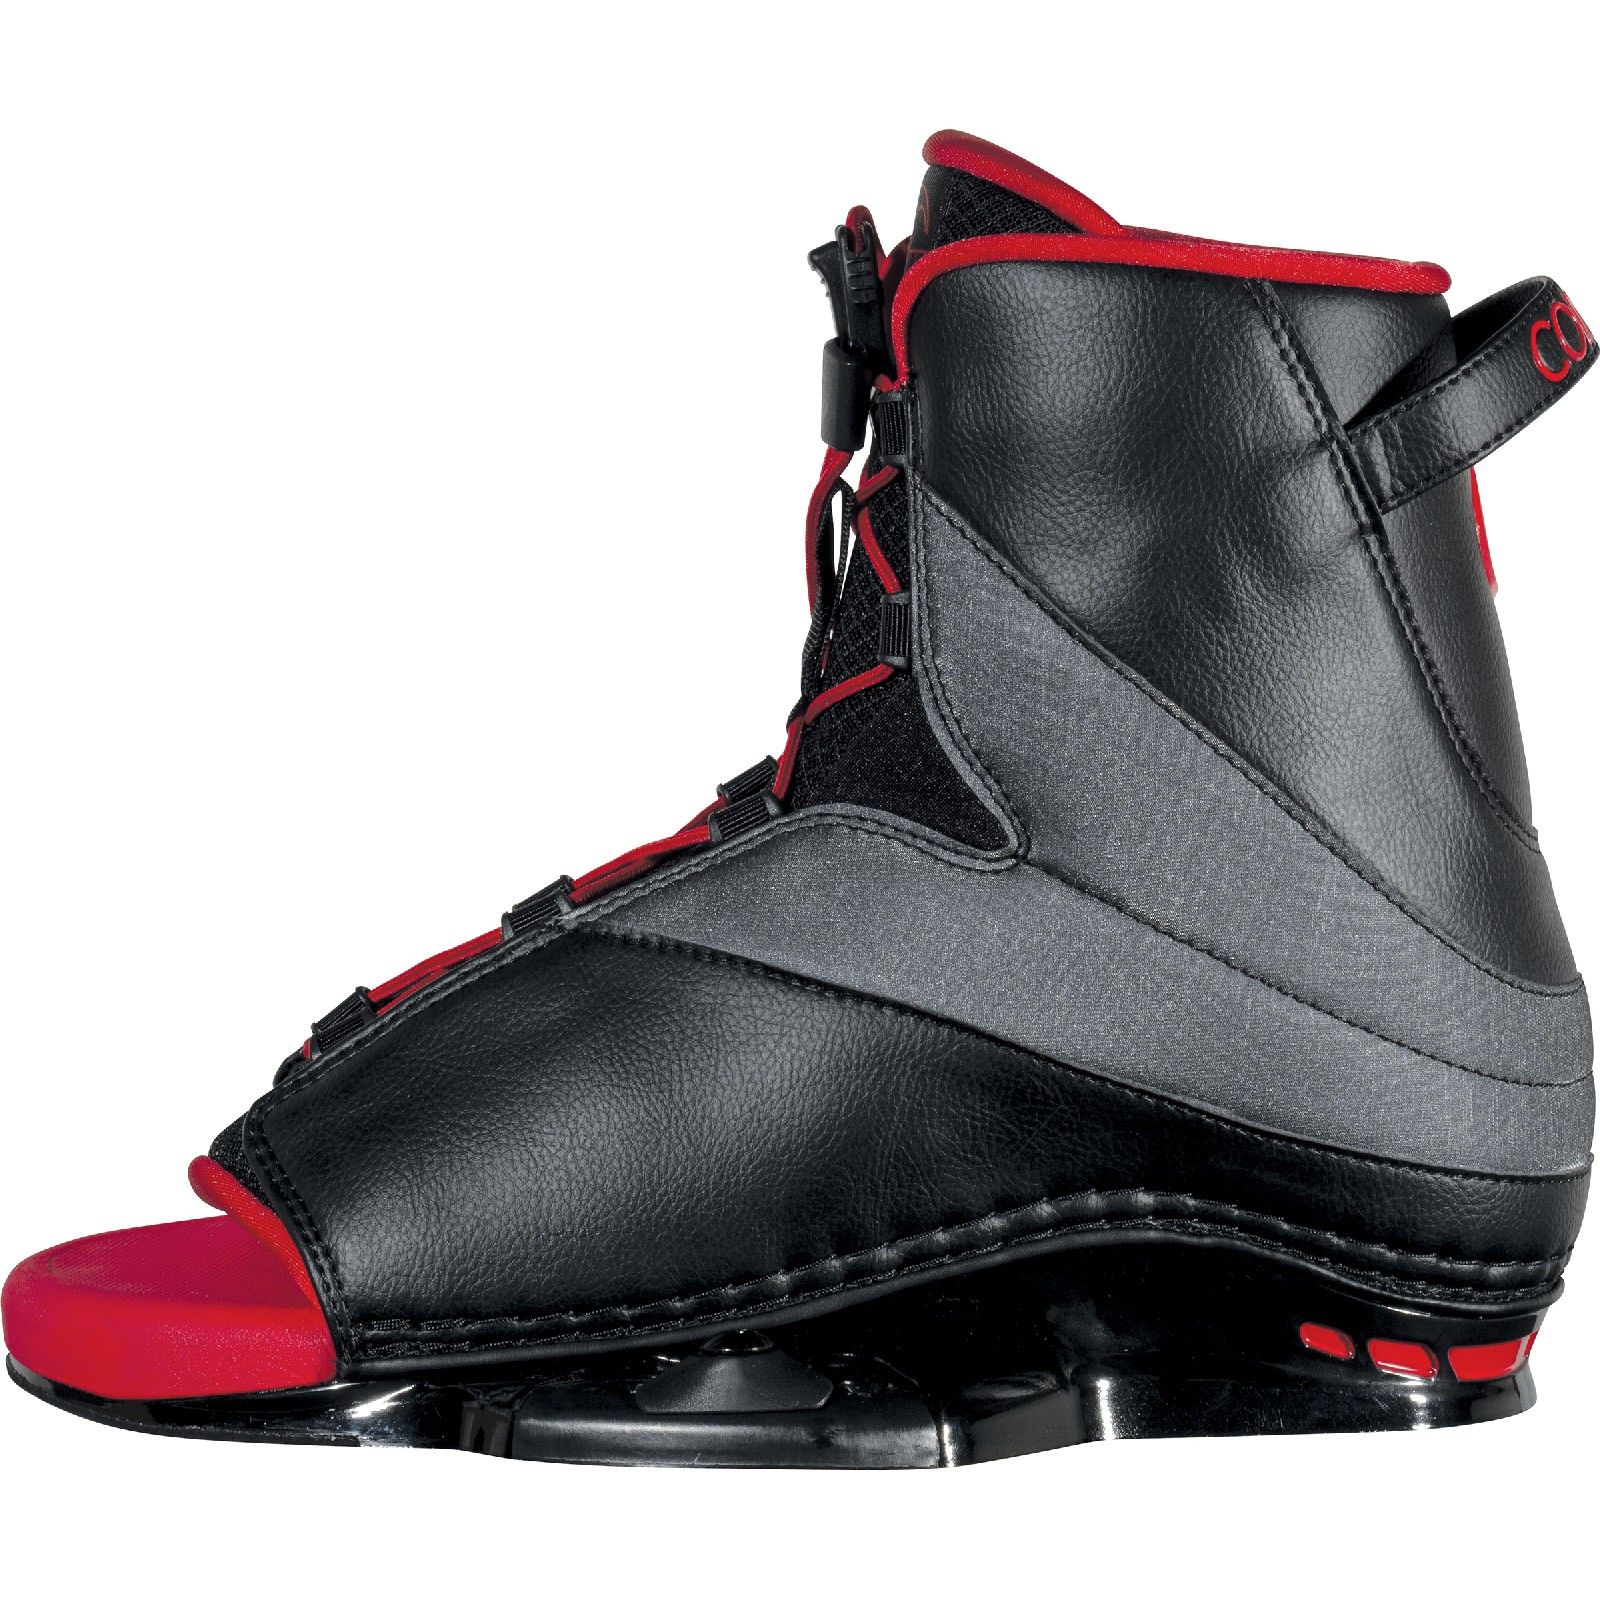 EMPIRE BOOT CONNELLY 2019